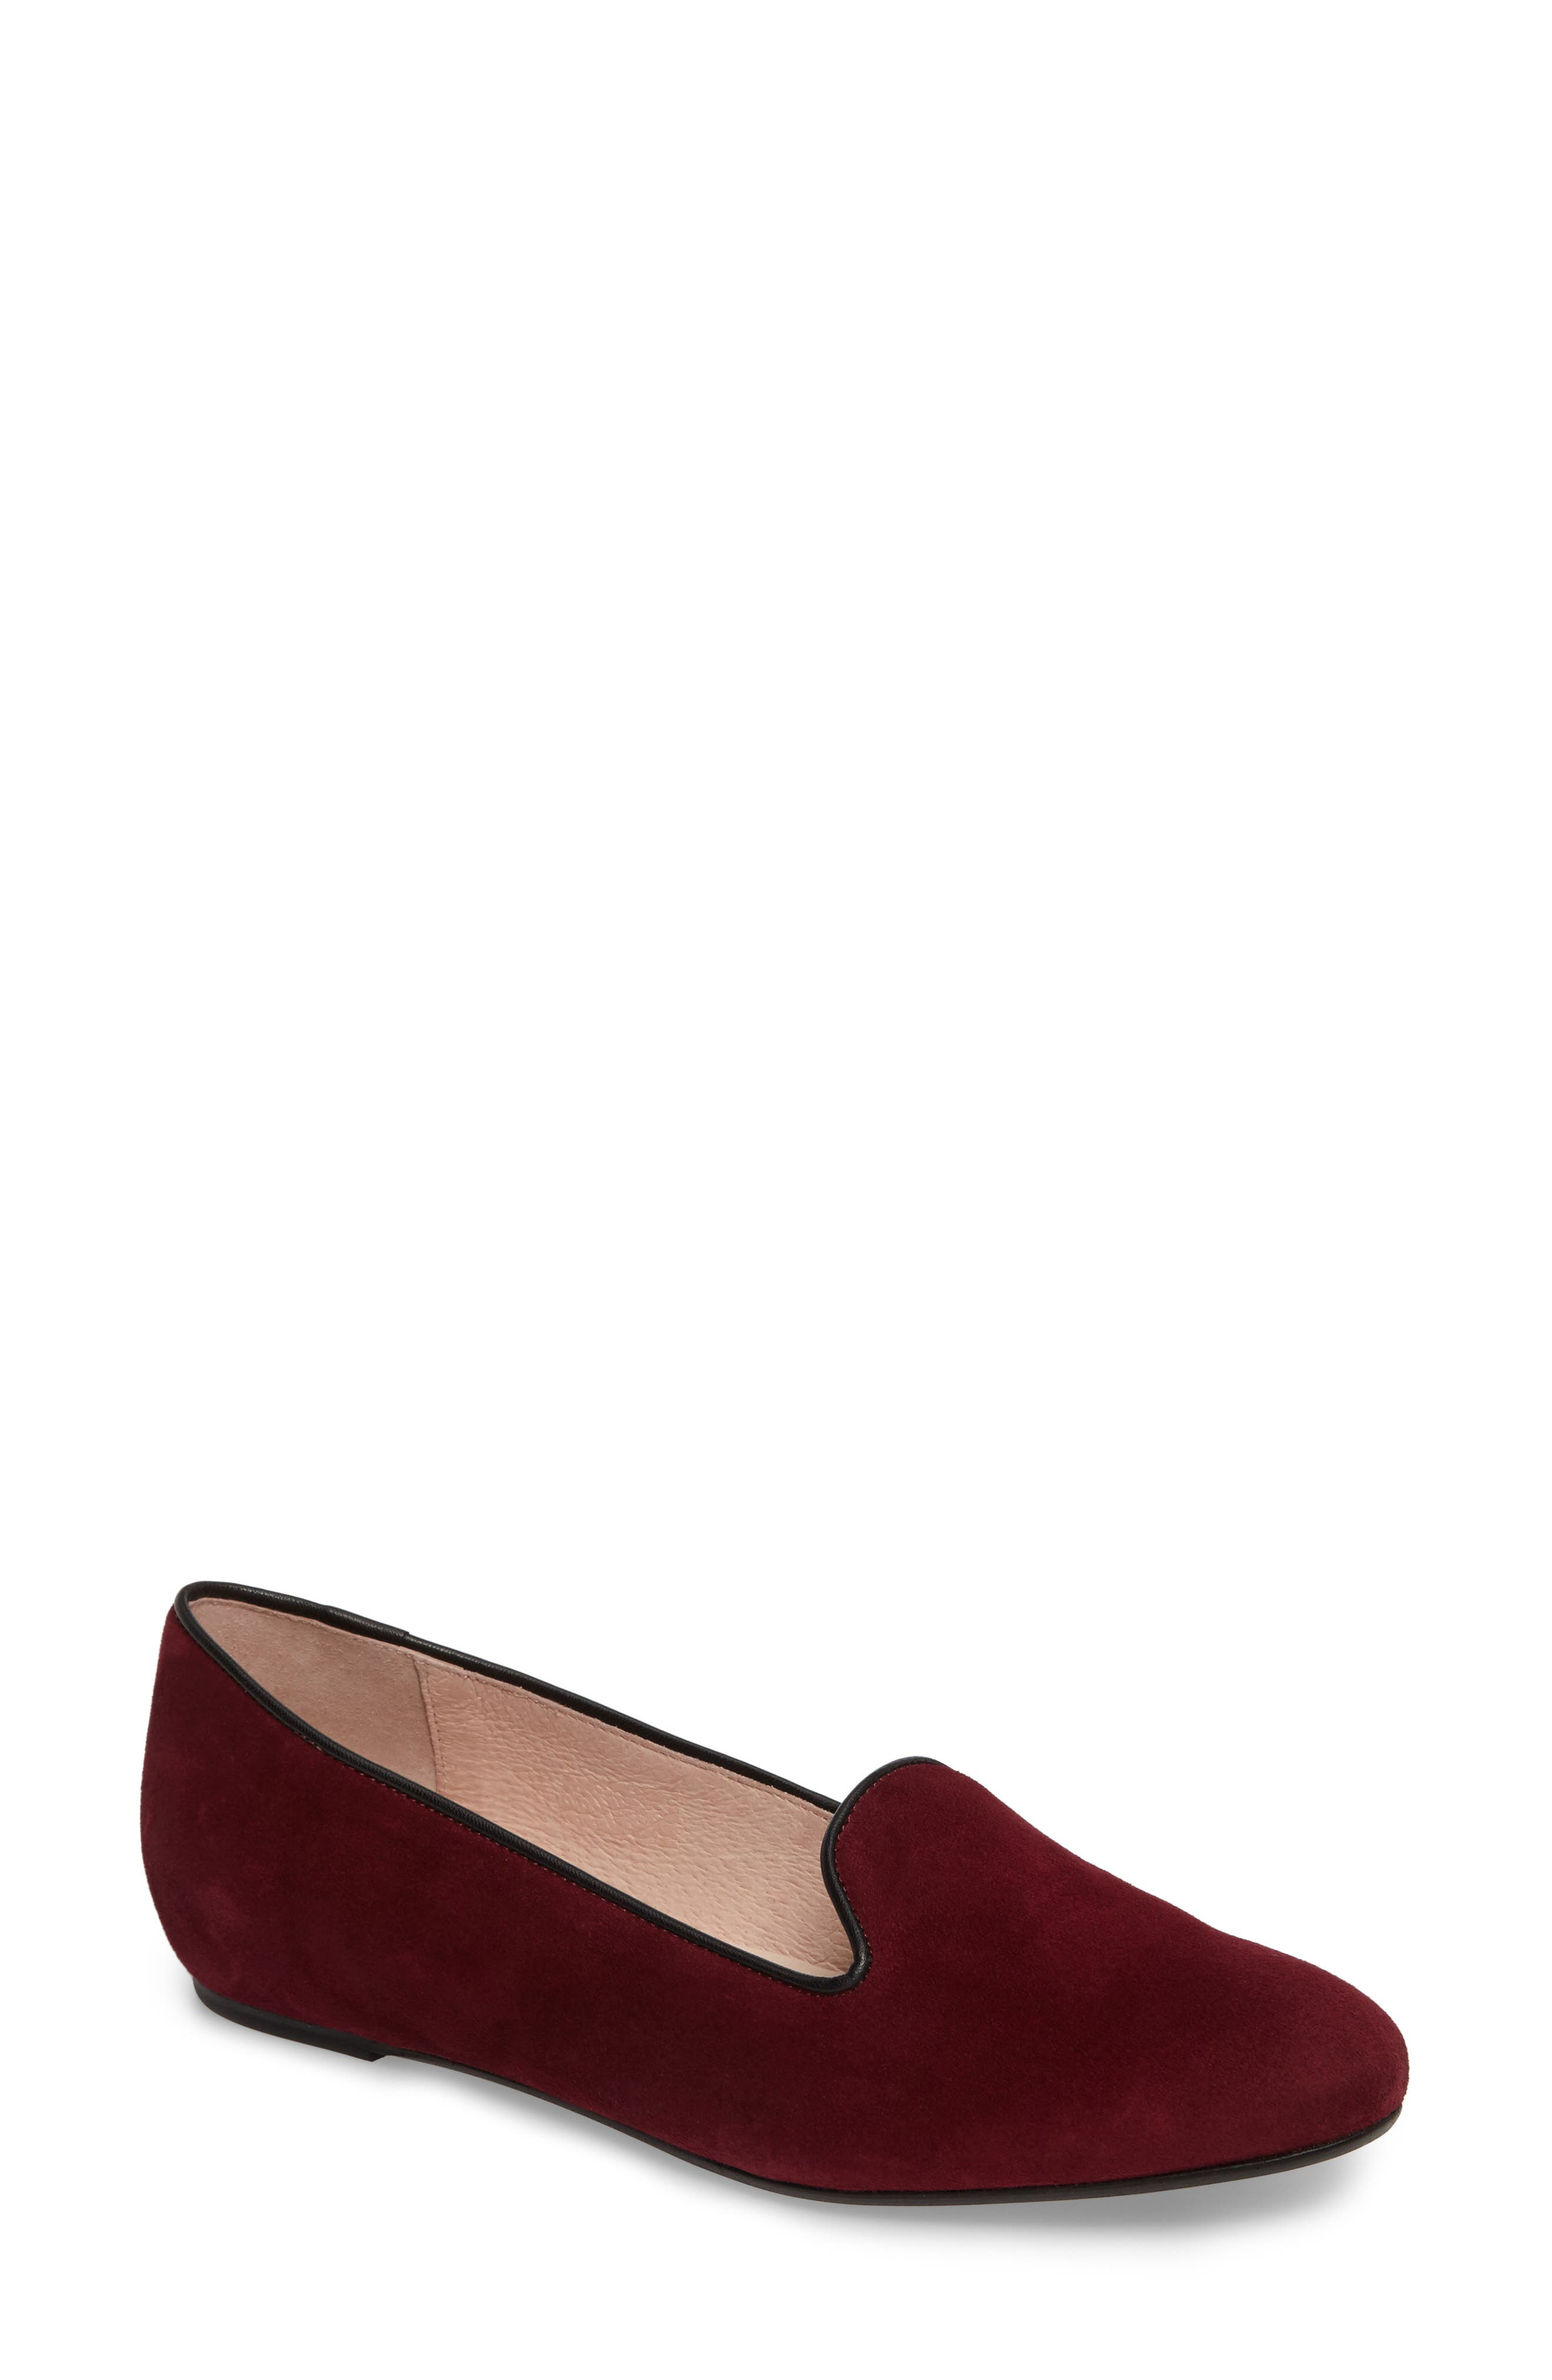 Alternate Image 1 Selected - patricia green Waverly Loafer Flat (Women)